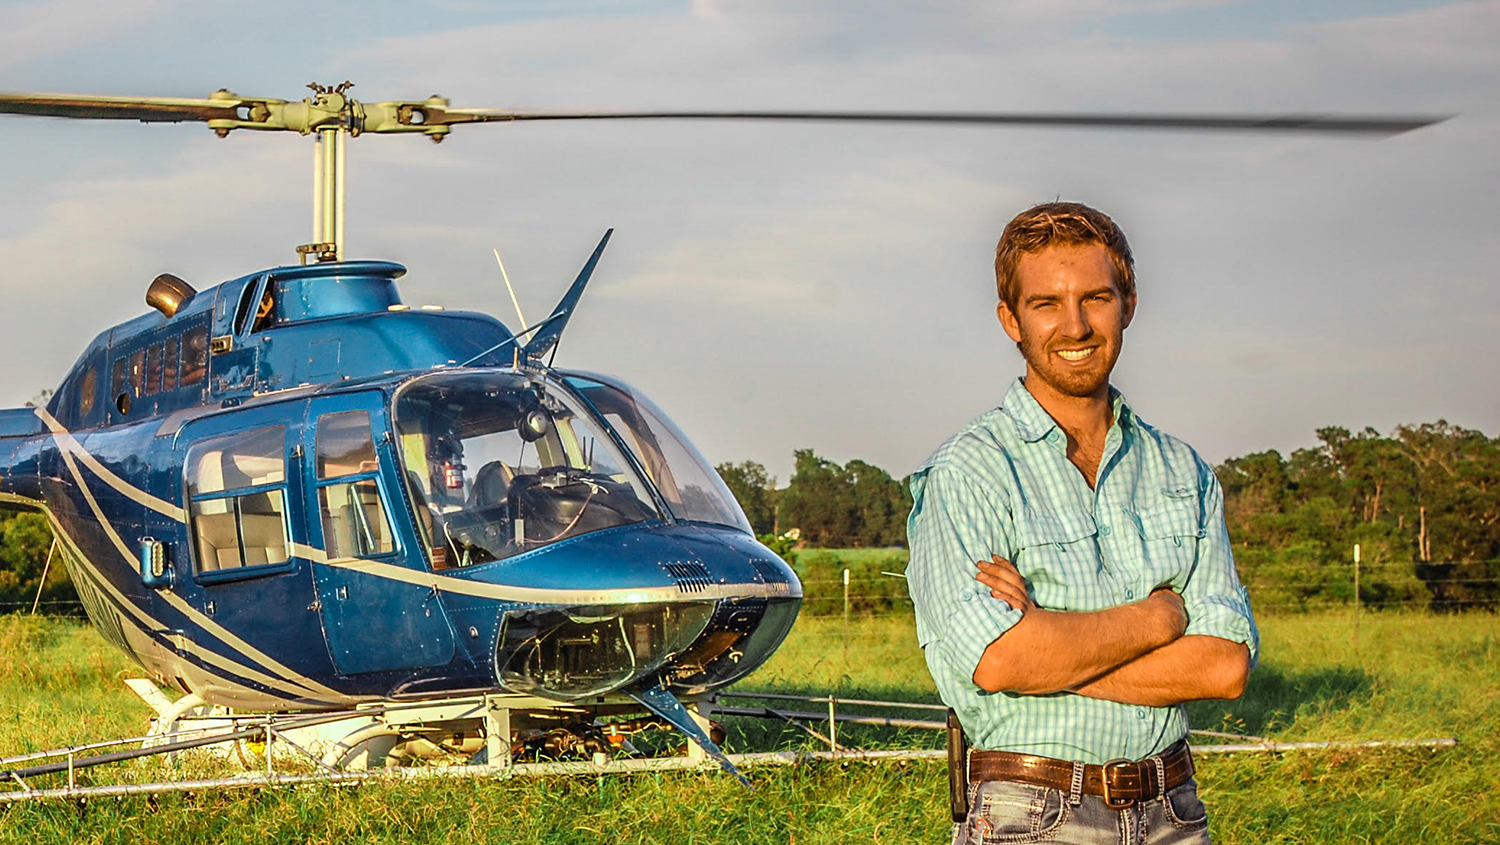 Jacob Tarlton in a field with his helicopter.